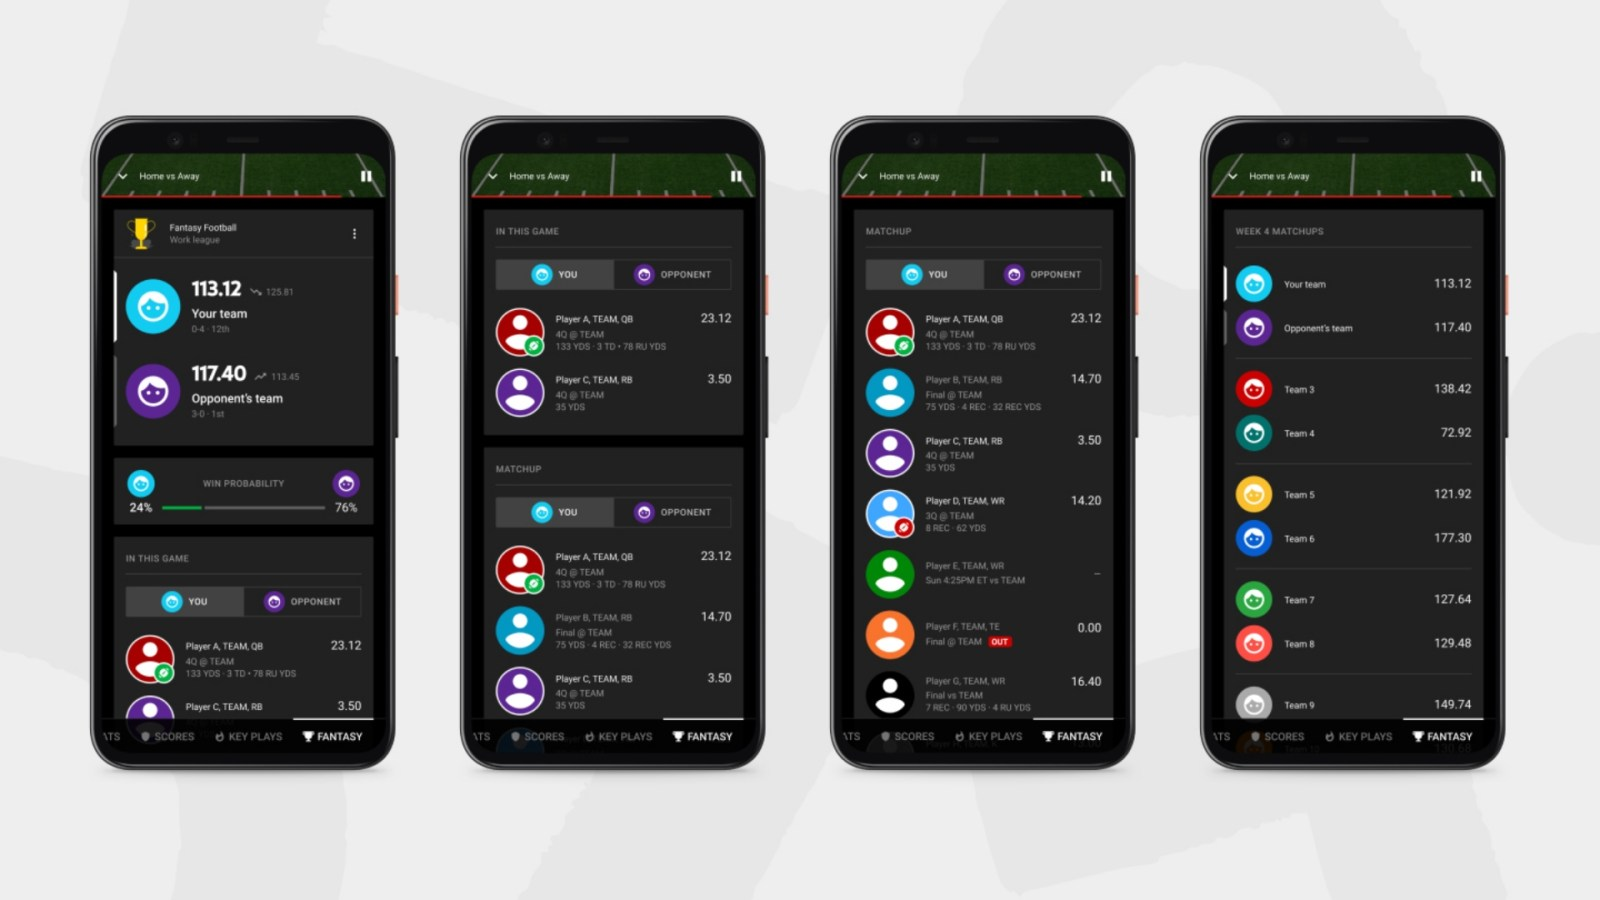 YouTube TV Introducing Fantasy View to Check Football Team Stats Without Leaving Game